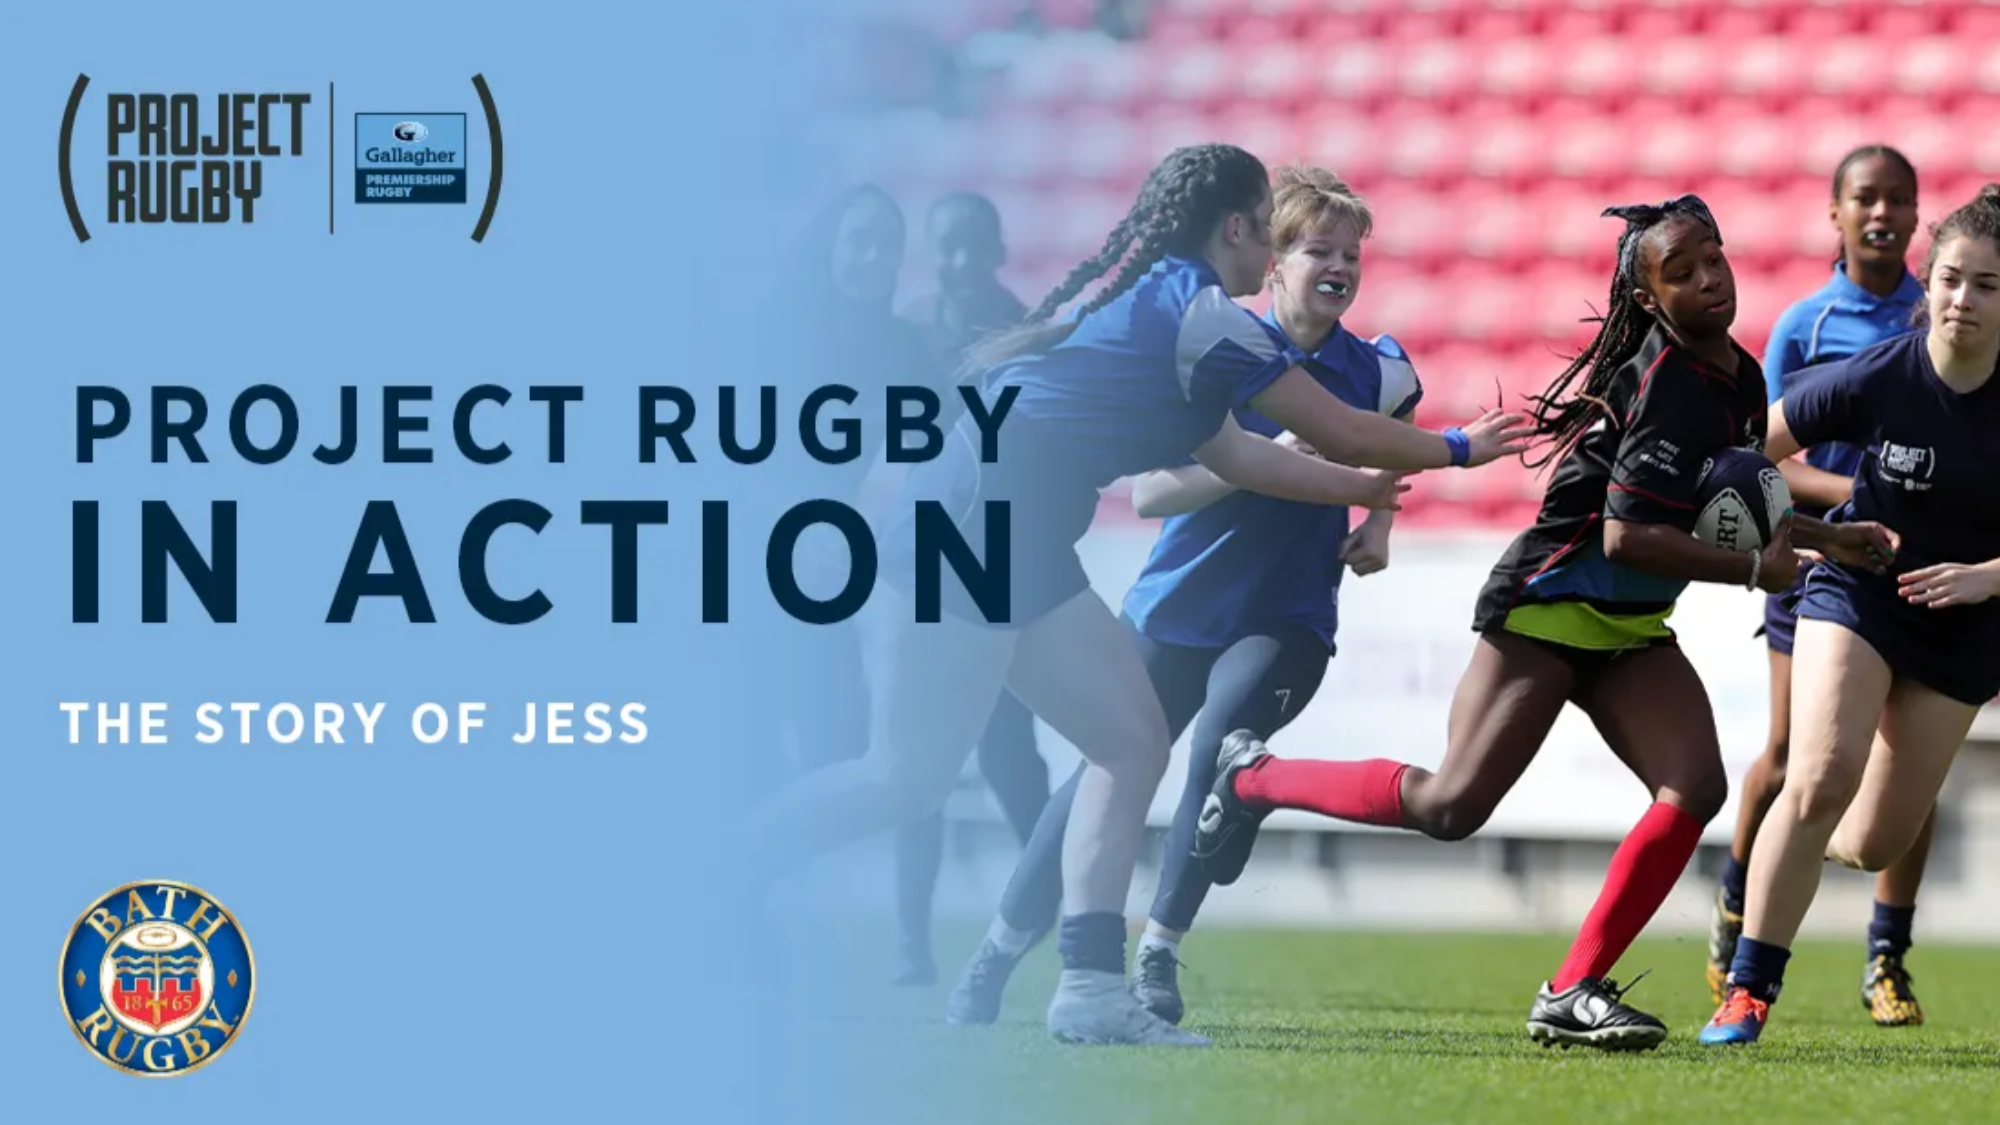 Project Rugby has given me independence, confidence and a fantastic team to be part of: Jess' story